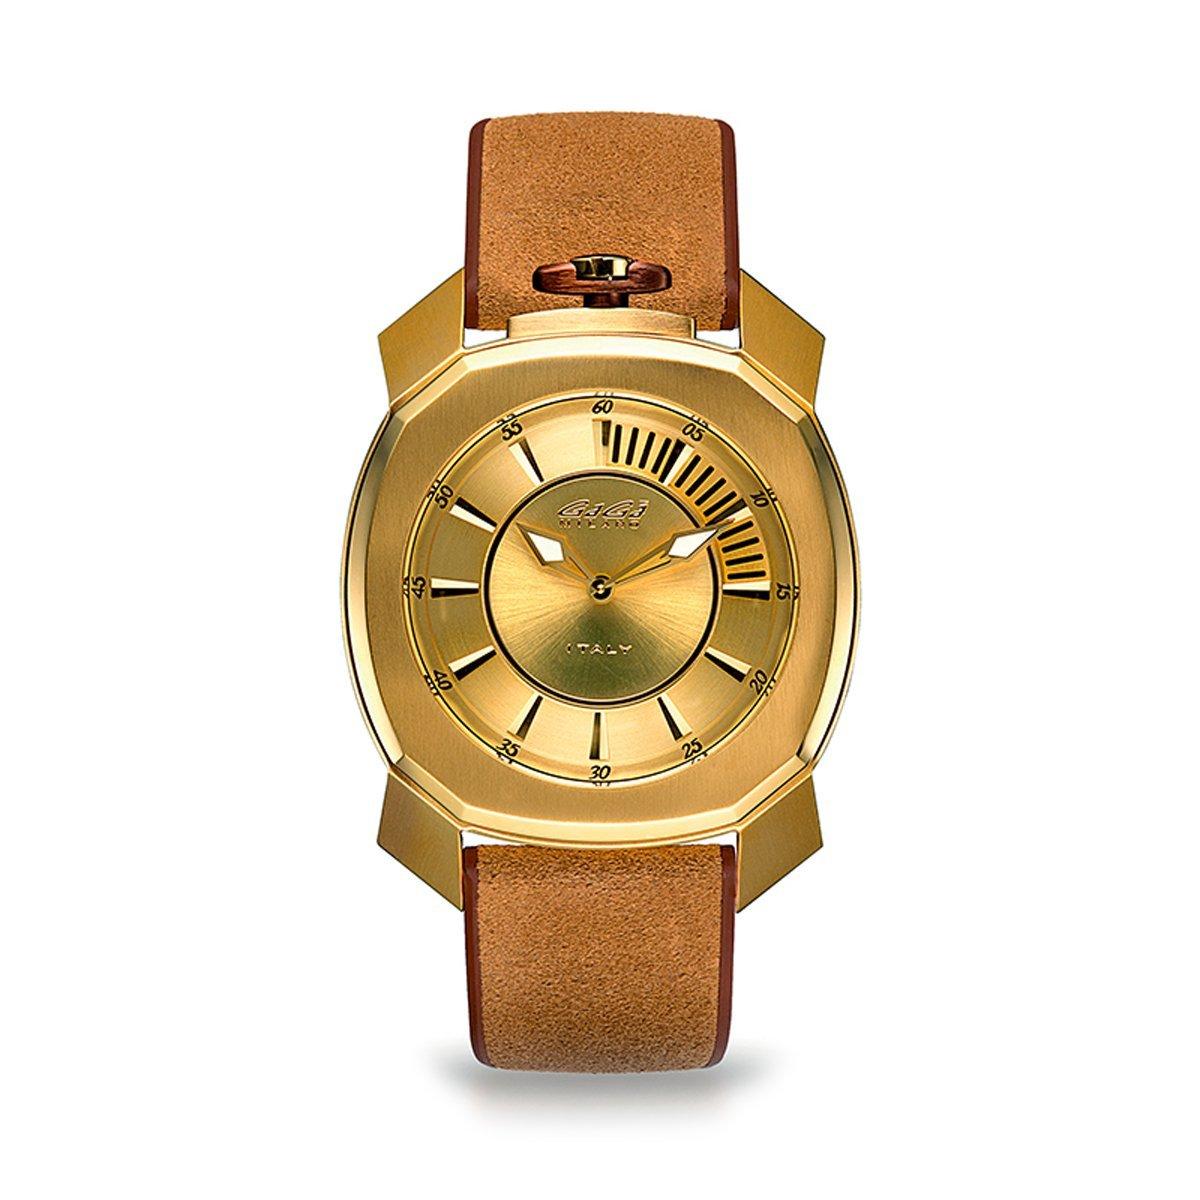 Gaga Milano Frame_One Gold - Watches & Crystals